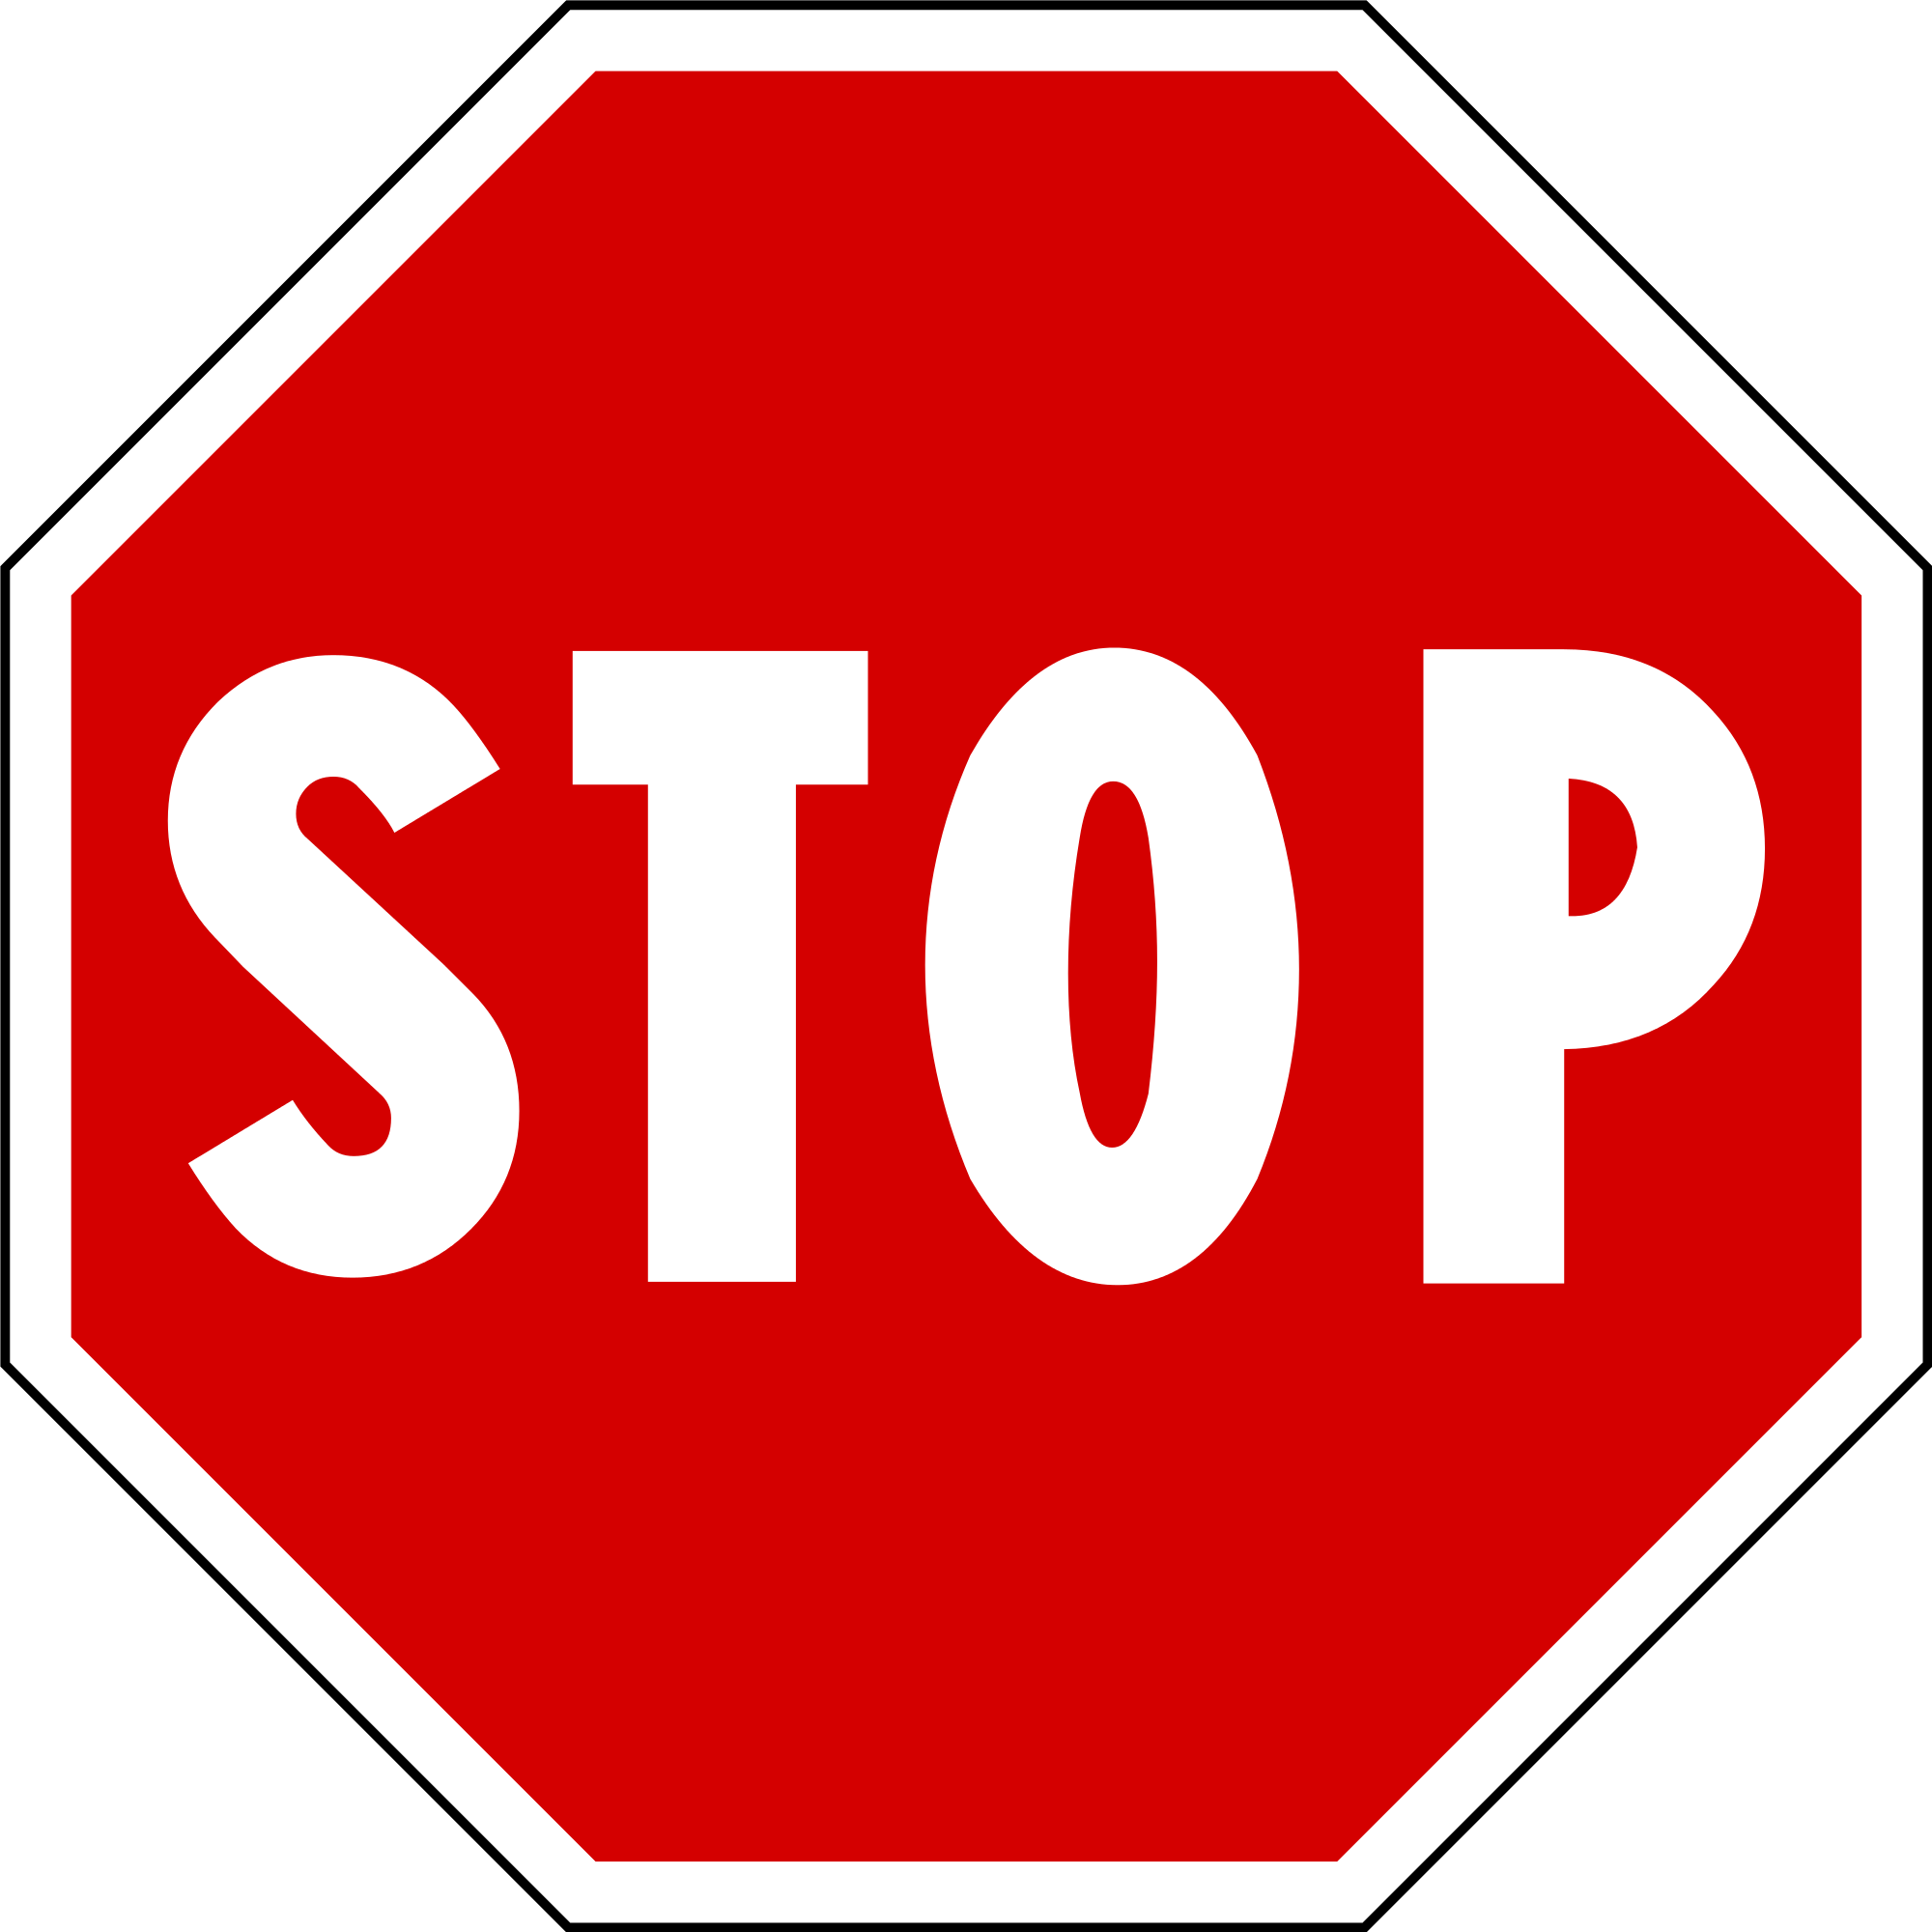 Stop Sign Clipart At Getdrawings.